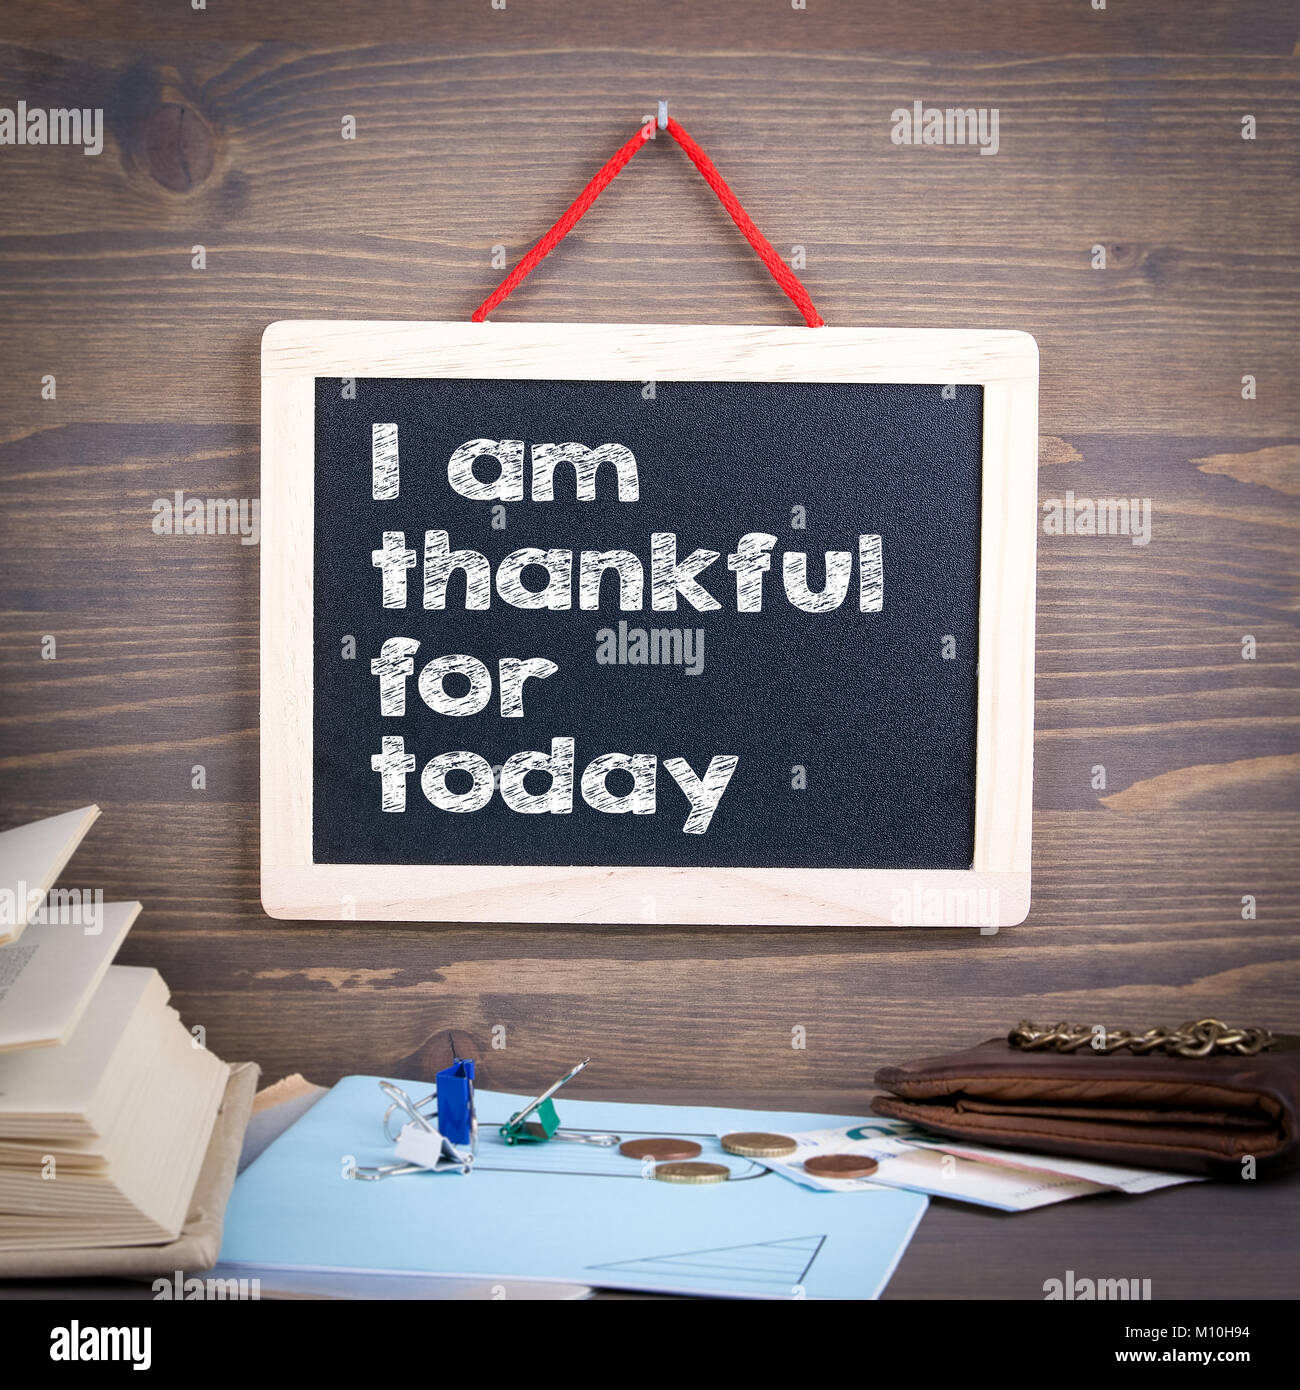 I am thankful for today. Chalkboard on a wooden background - Stock Image